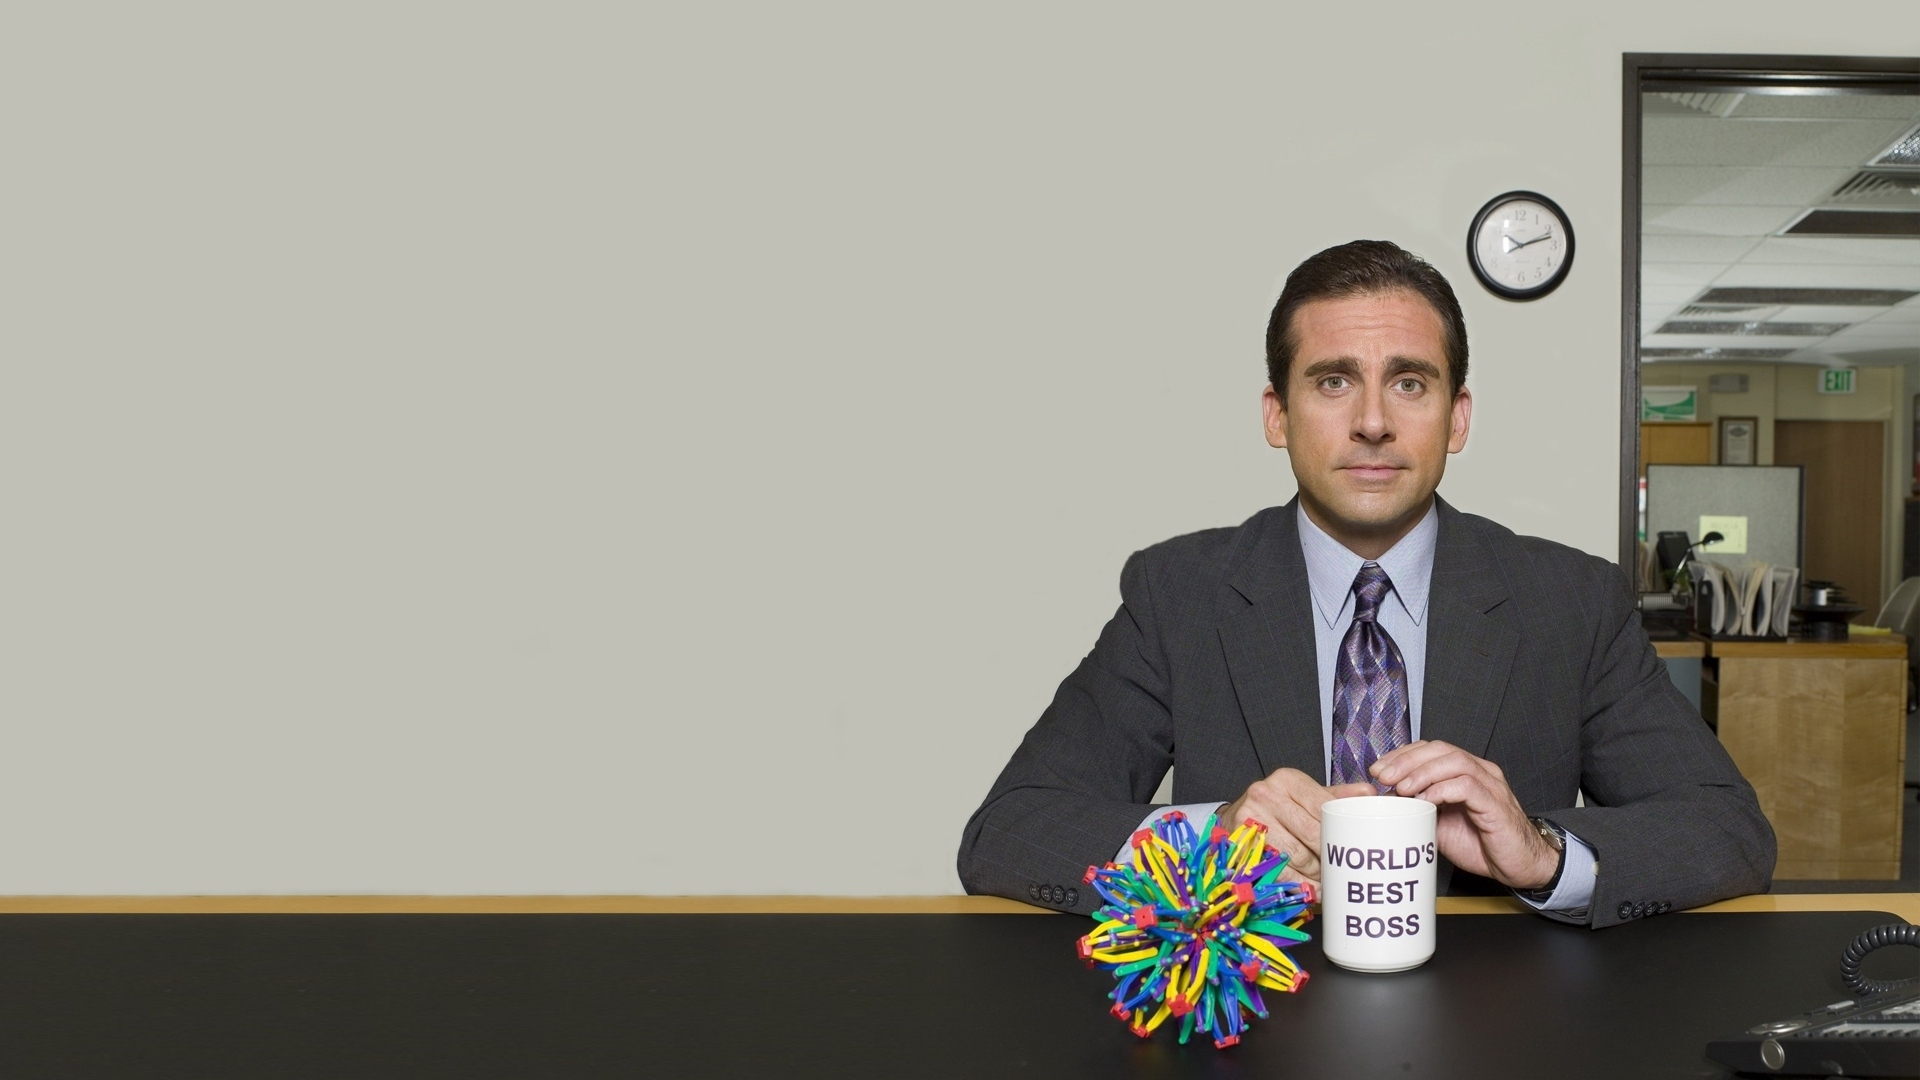 download wallpaper 1920x1080 the office, tv series, steve carell